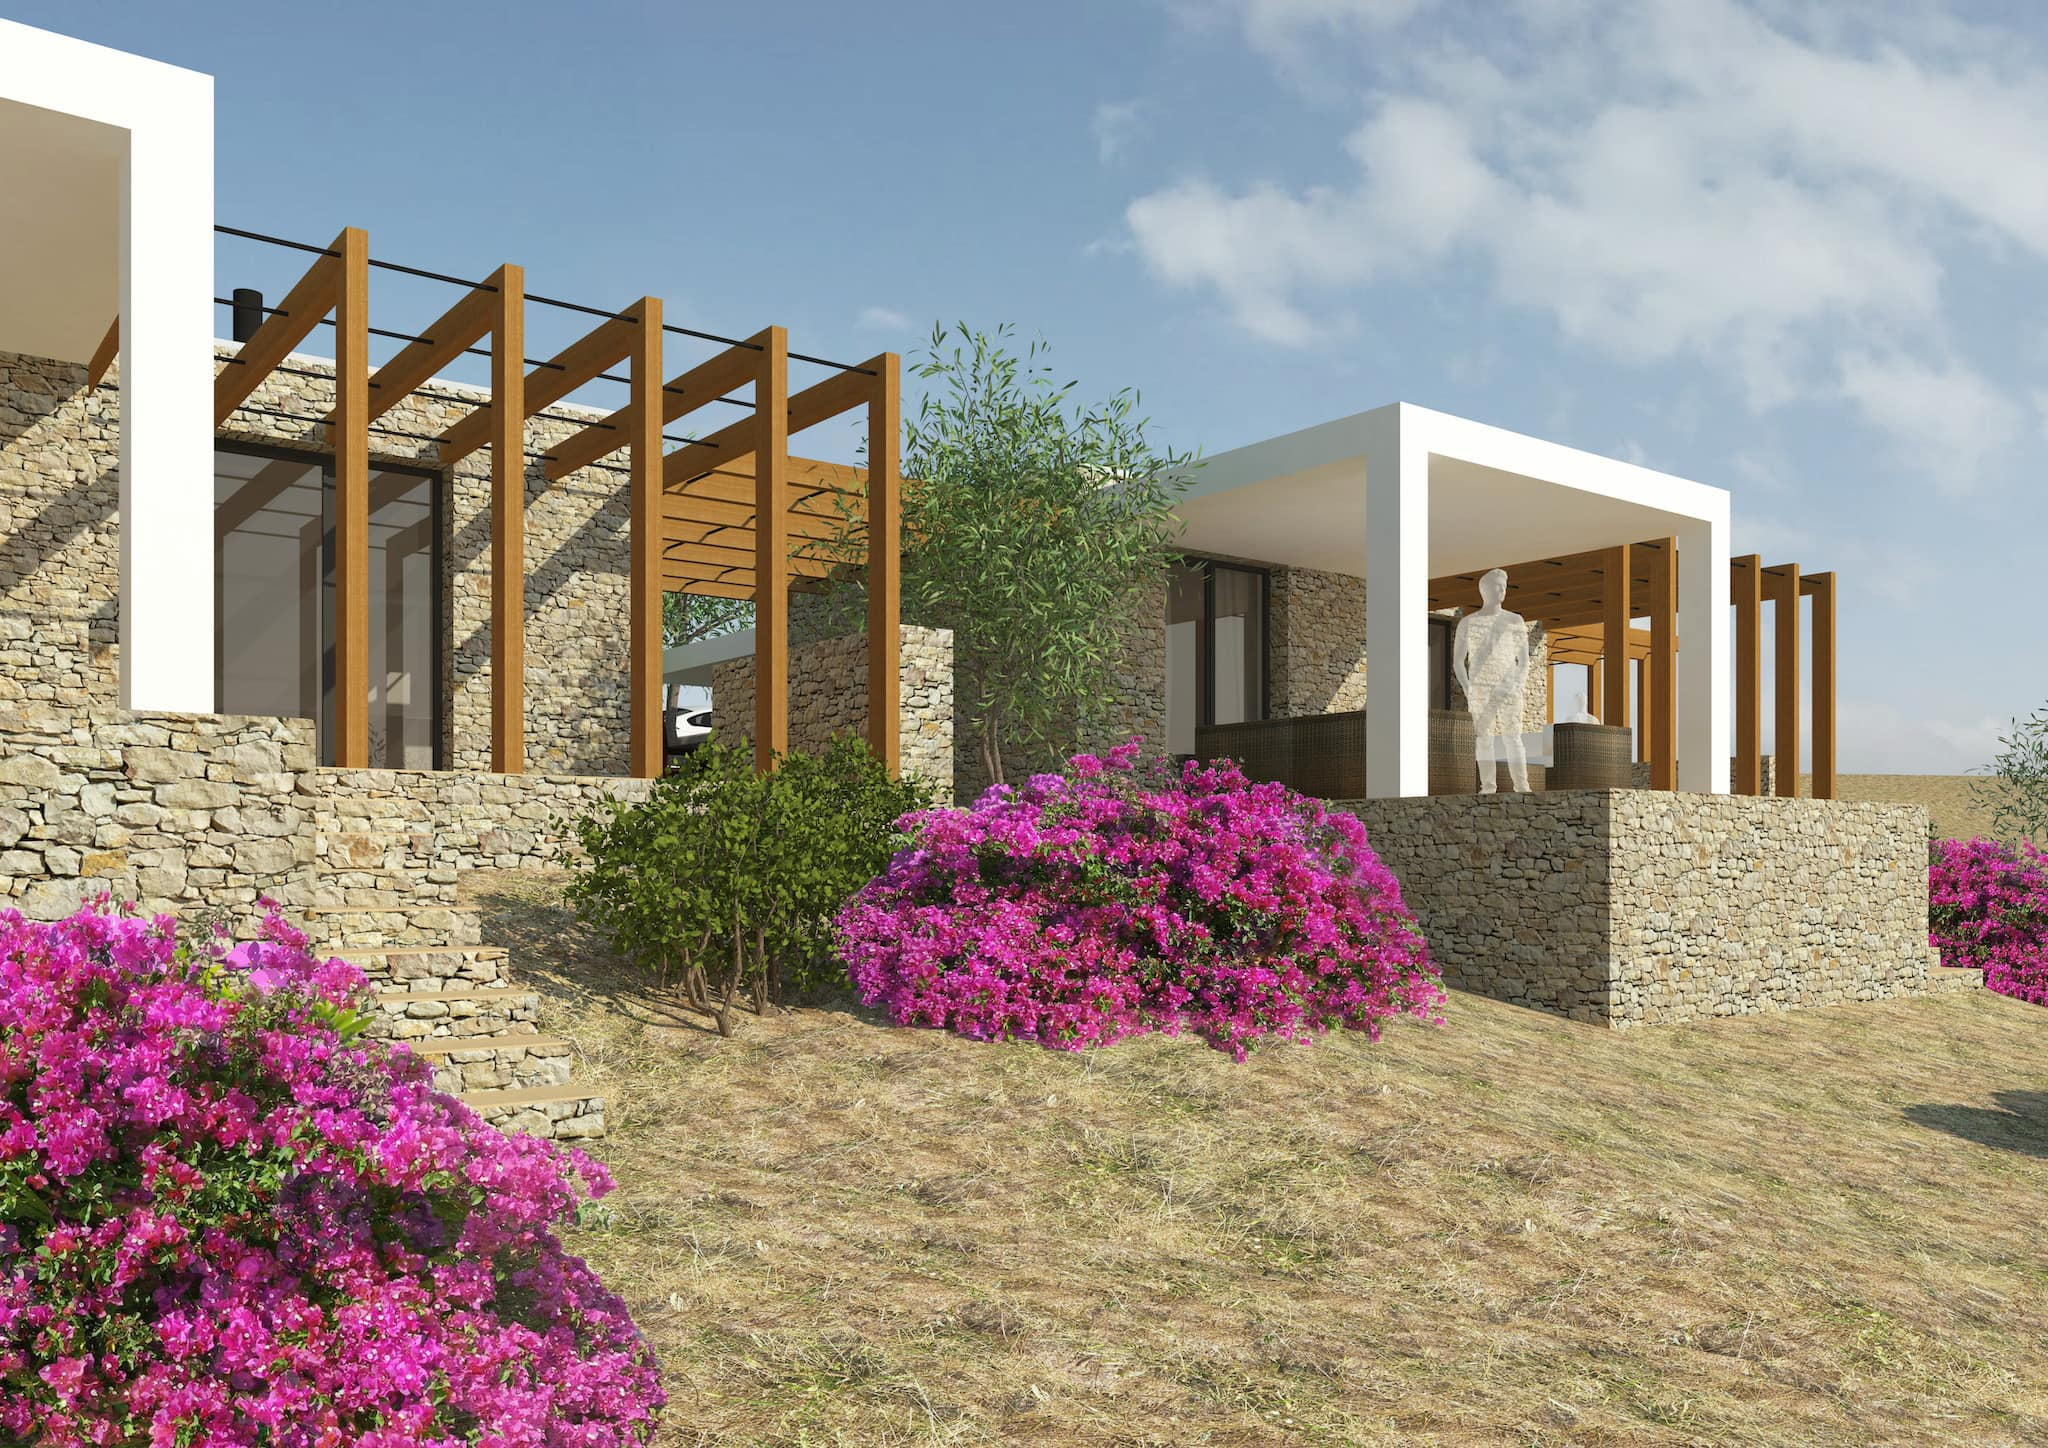 Our investment project for luxurious villas in Xerokampos, Crete